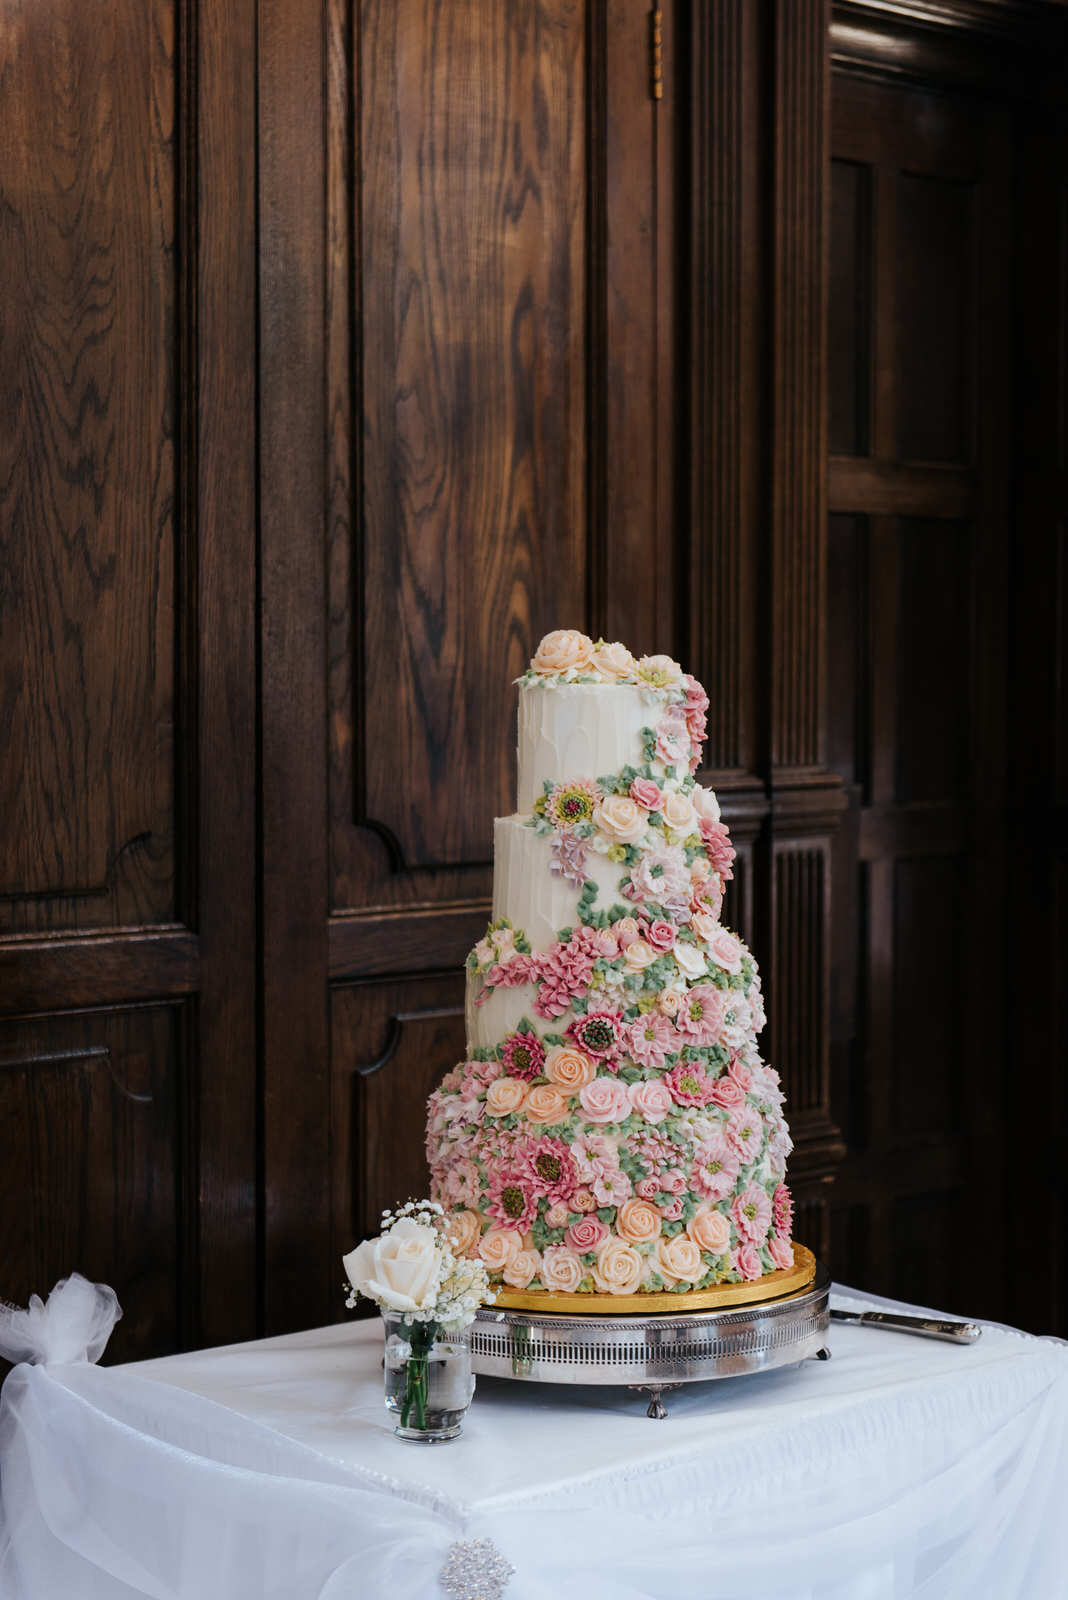 Beautiful, four-tier wedding cake decorated with roses and flowe